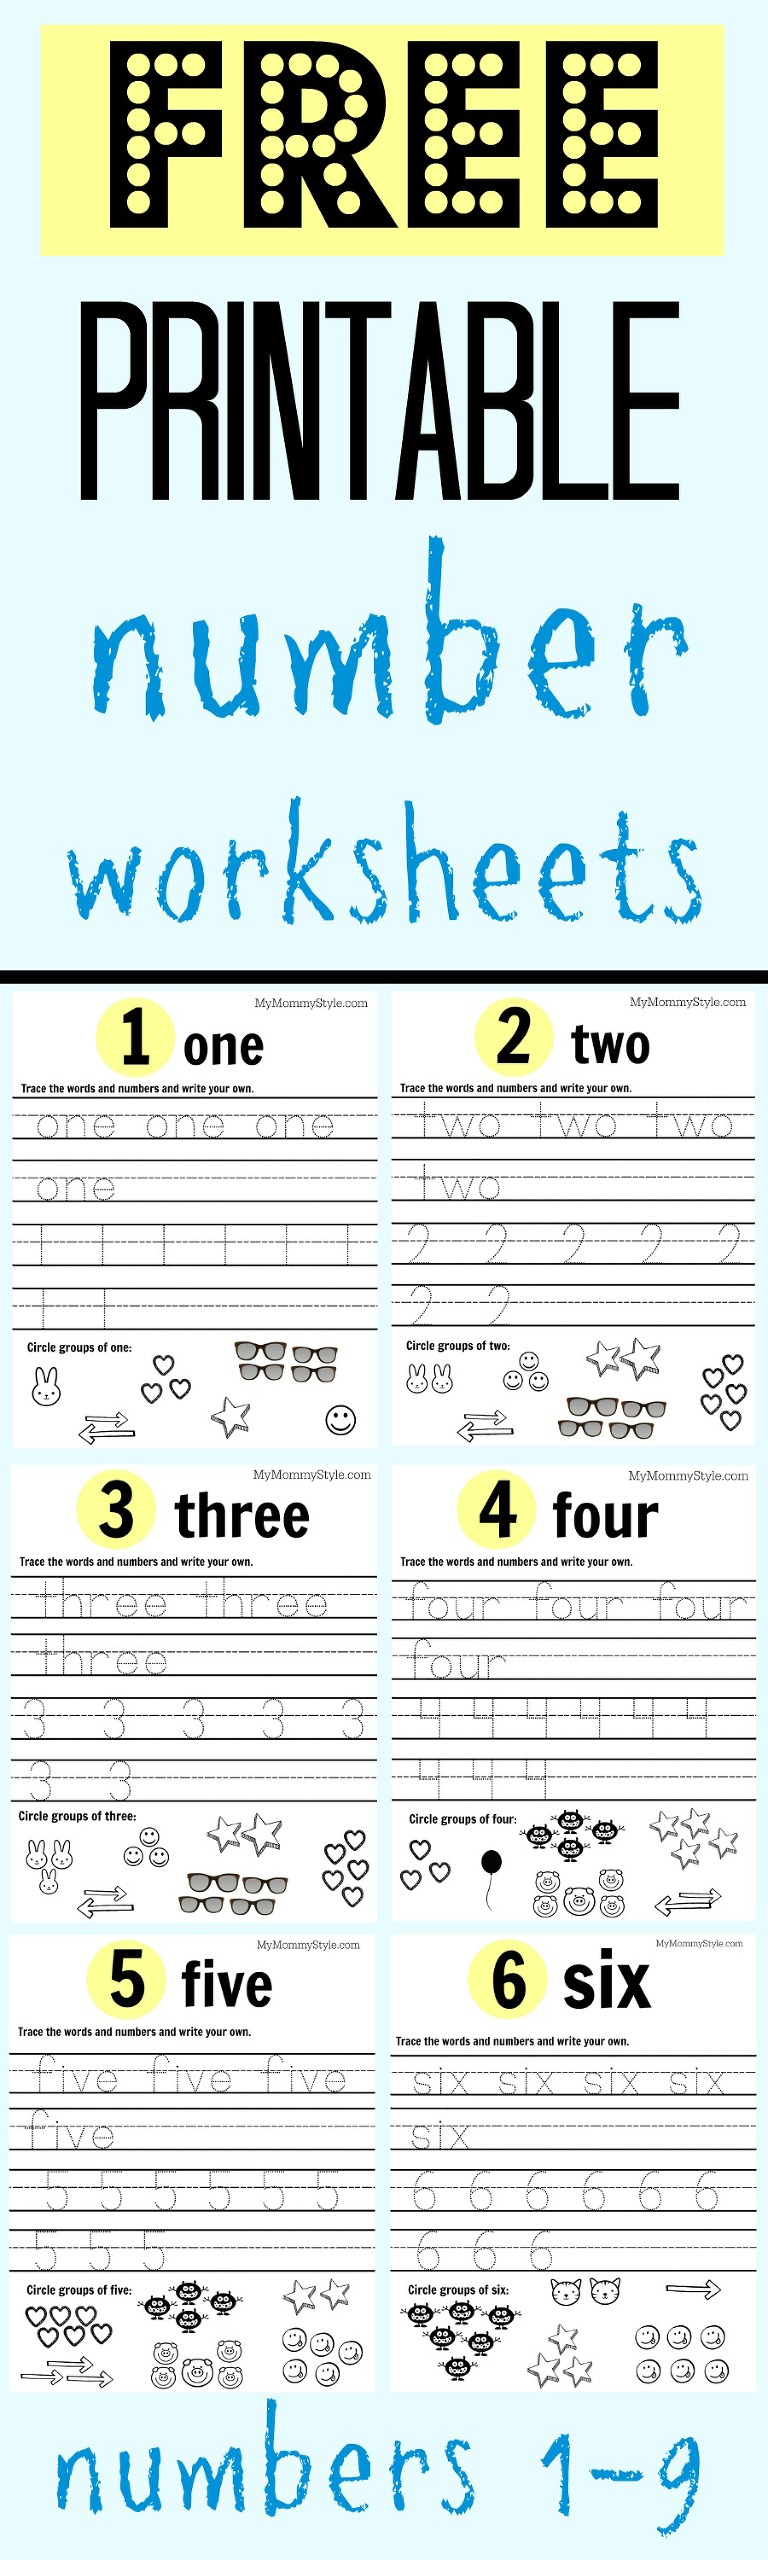 Free Printable Number Worksheets 19 My Mommy Style – Free Printable Number Worksheets